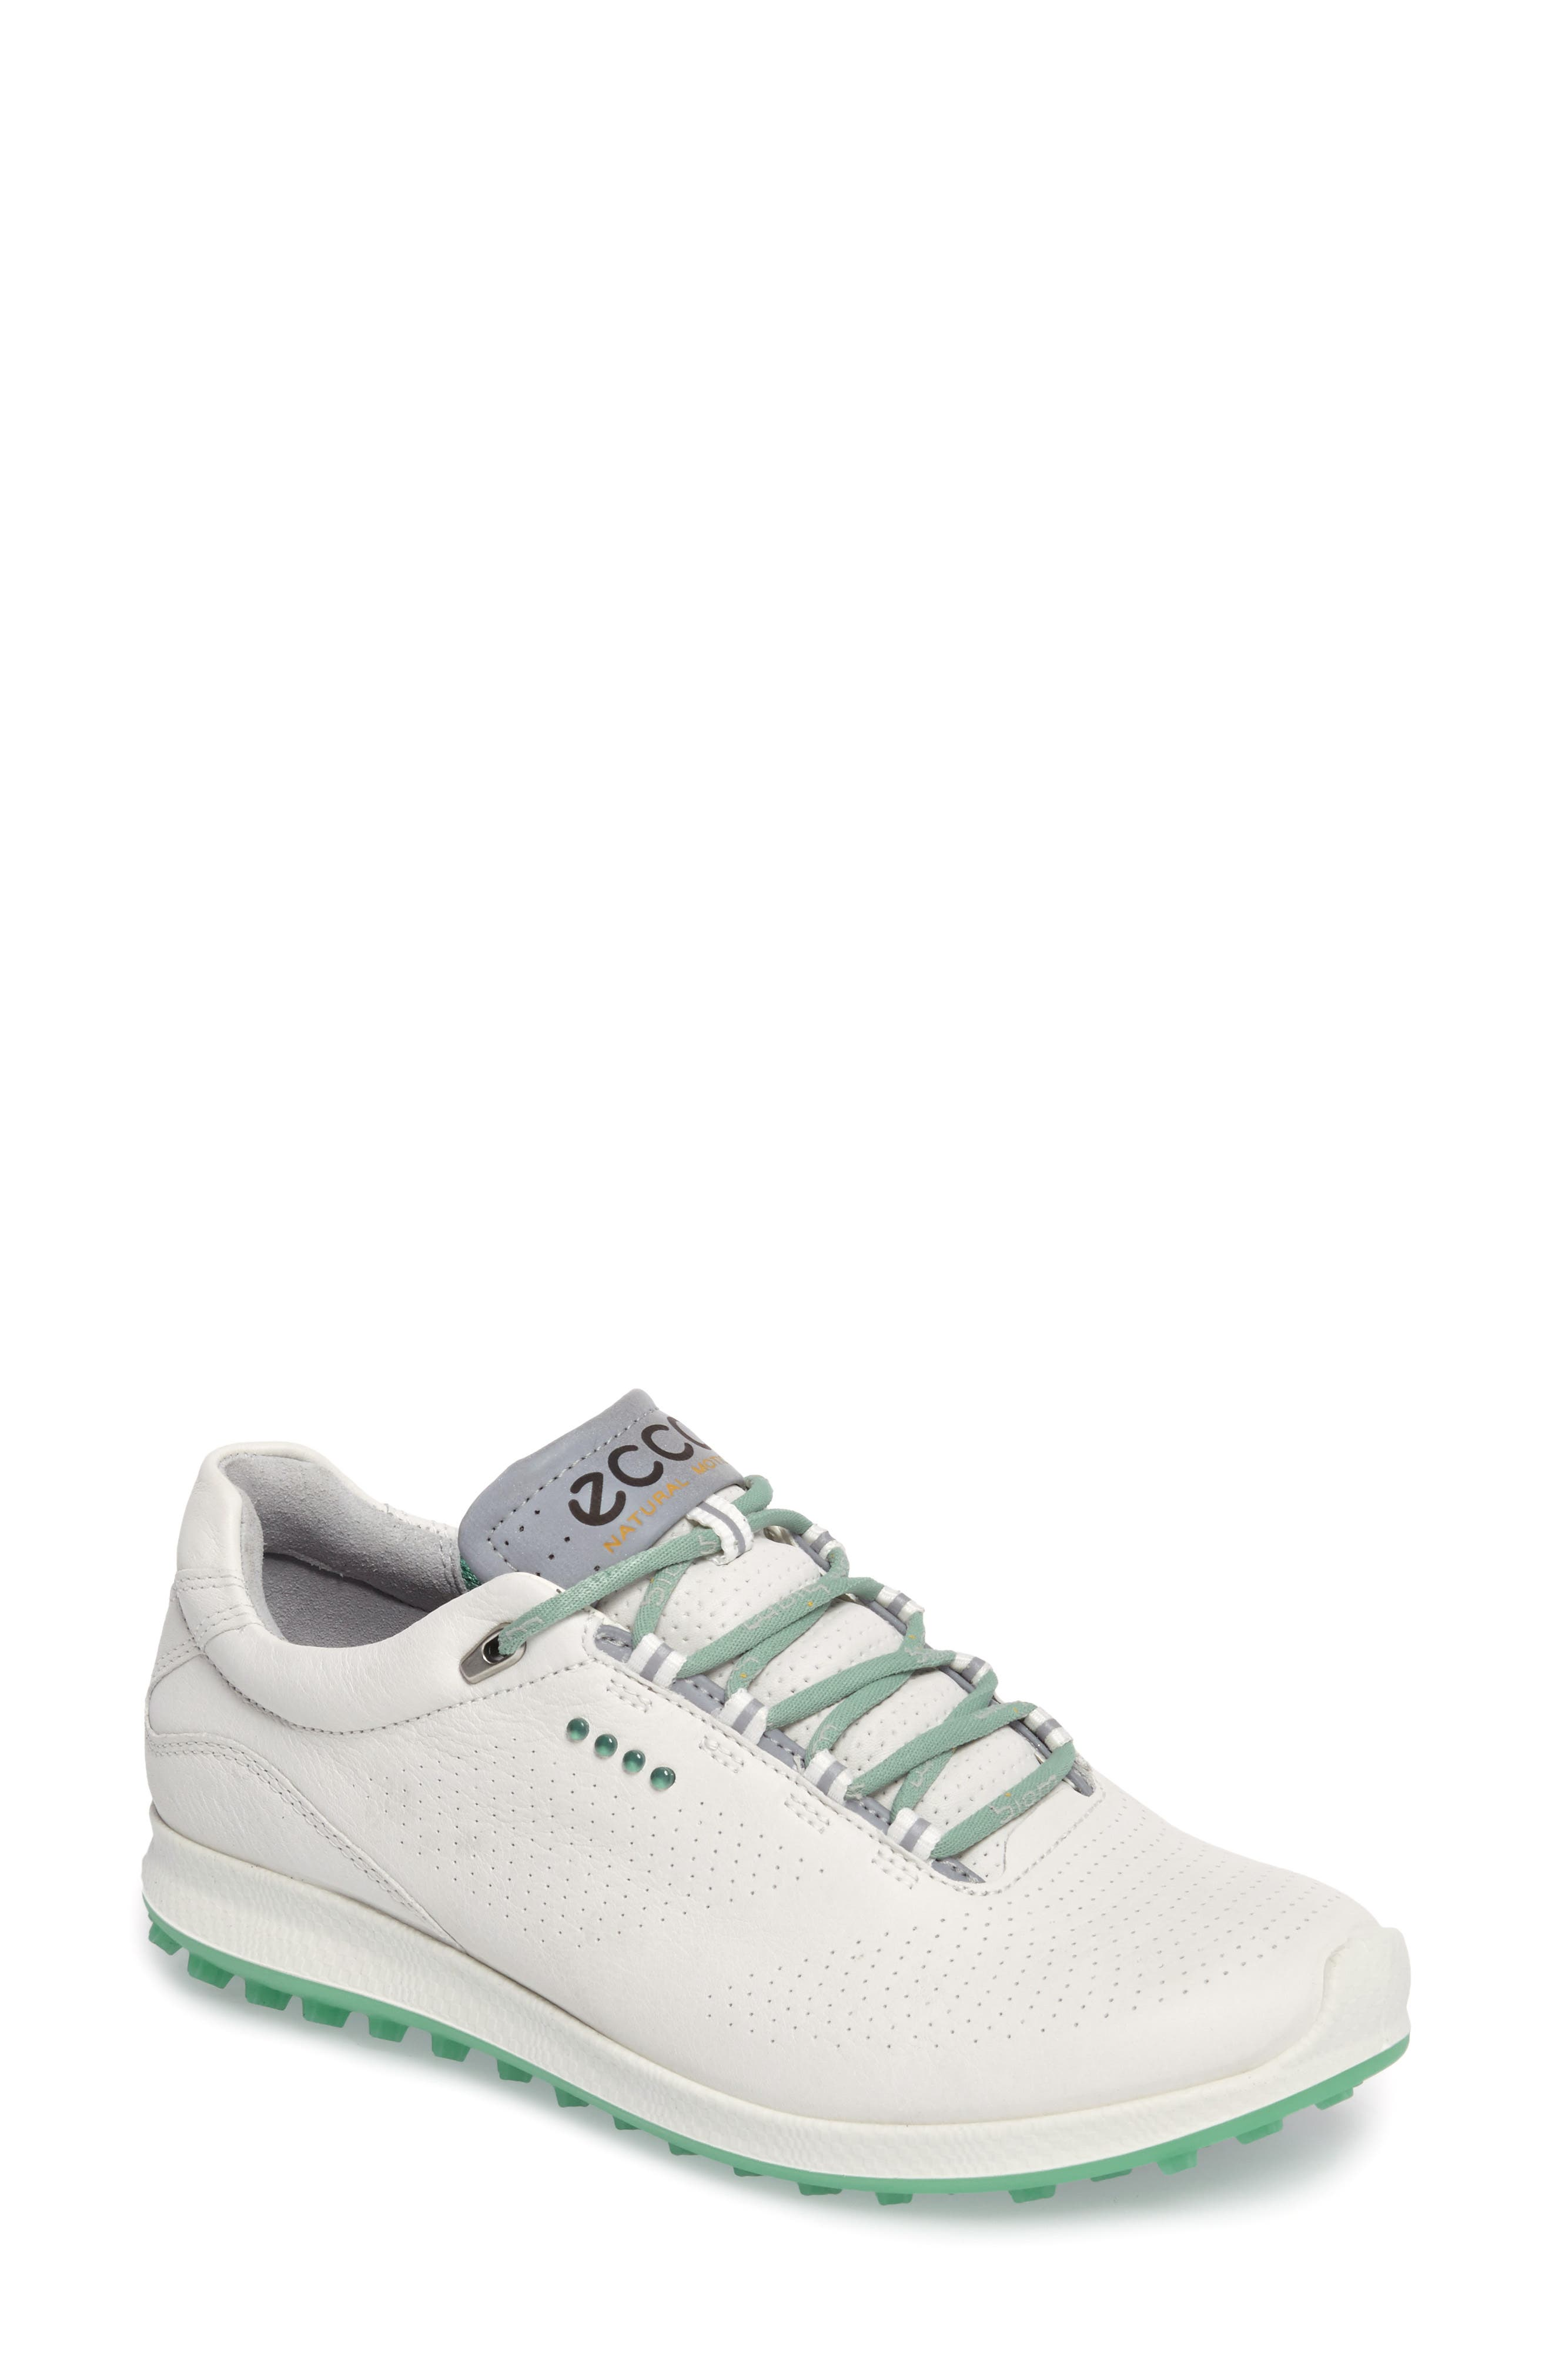 ECCO BIOM 2 Hybrid Water-Repellent Golf Shoe (Women)